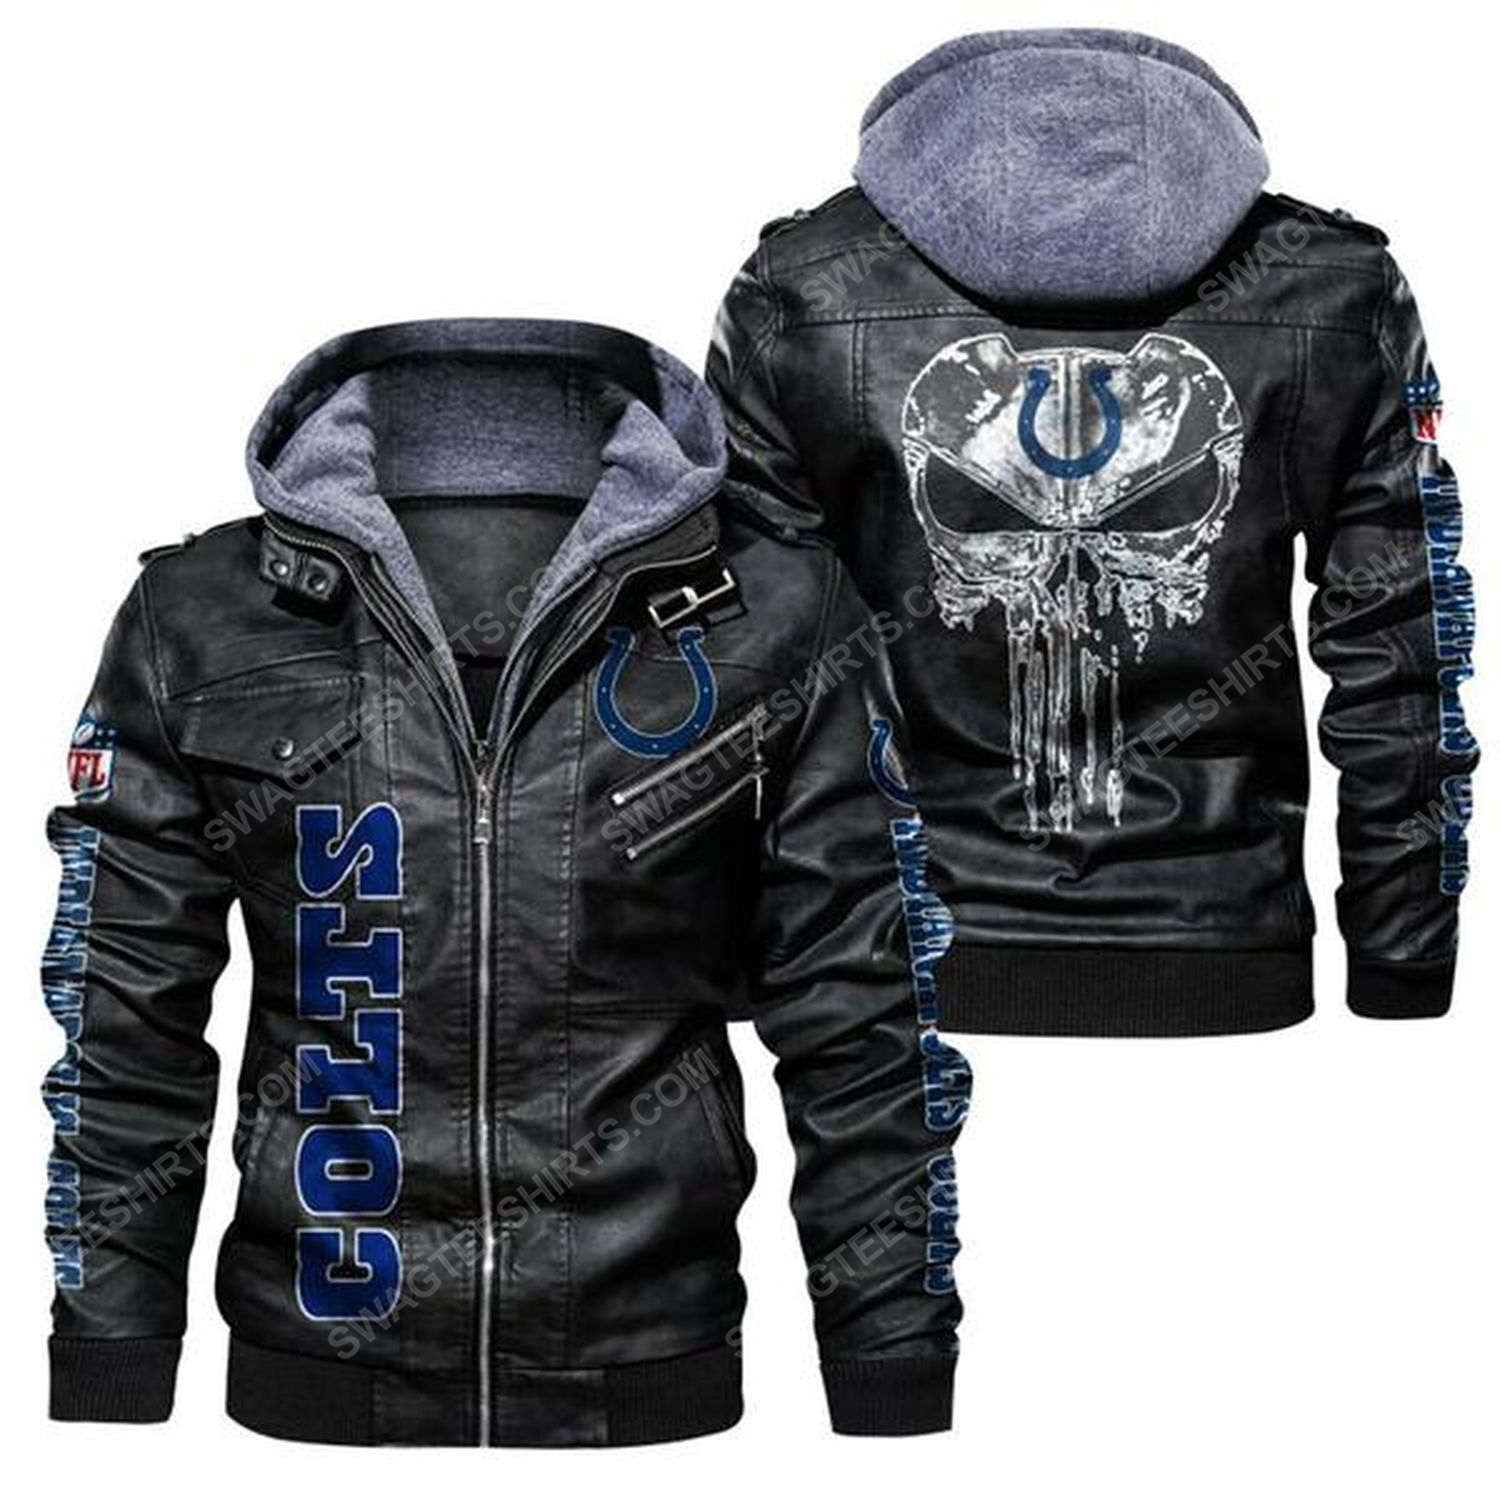 National football league indianapolis colts leather jacket - black